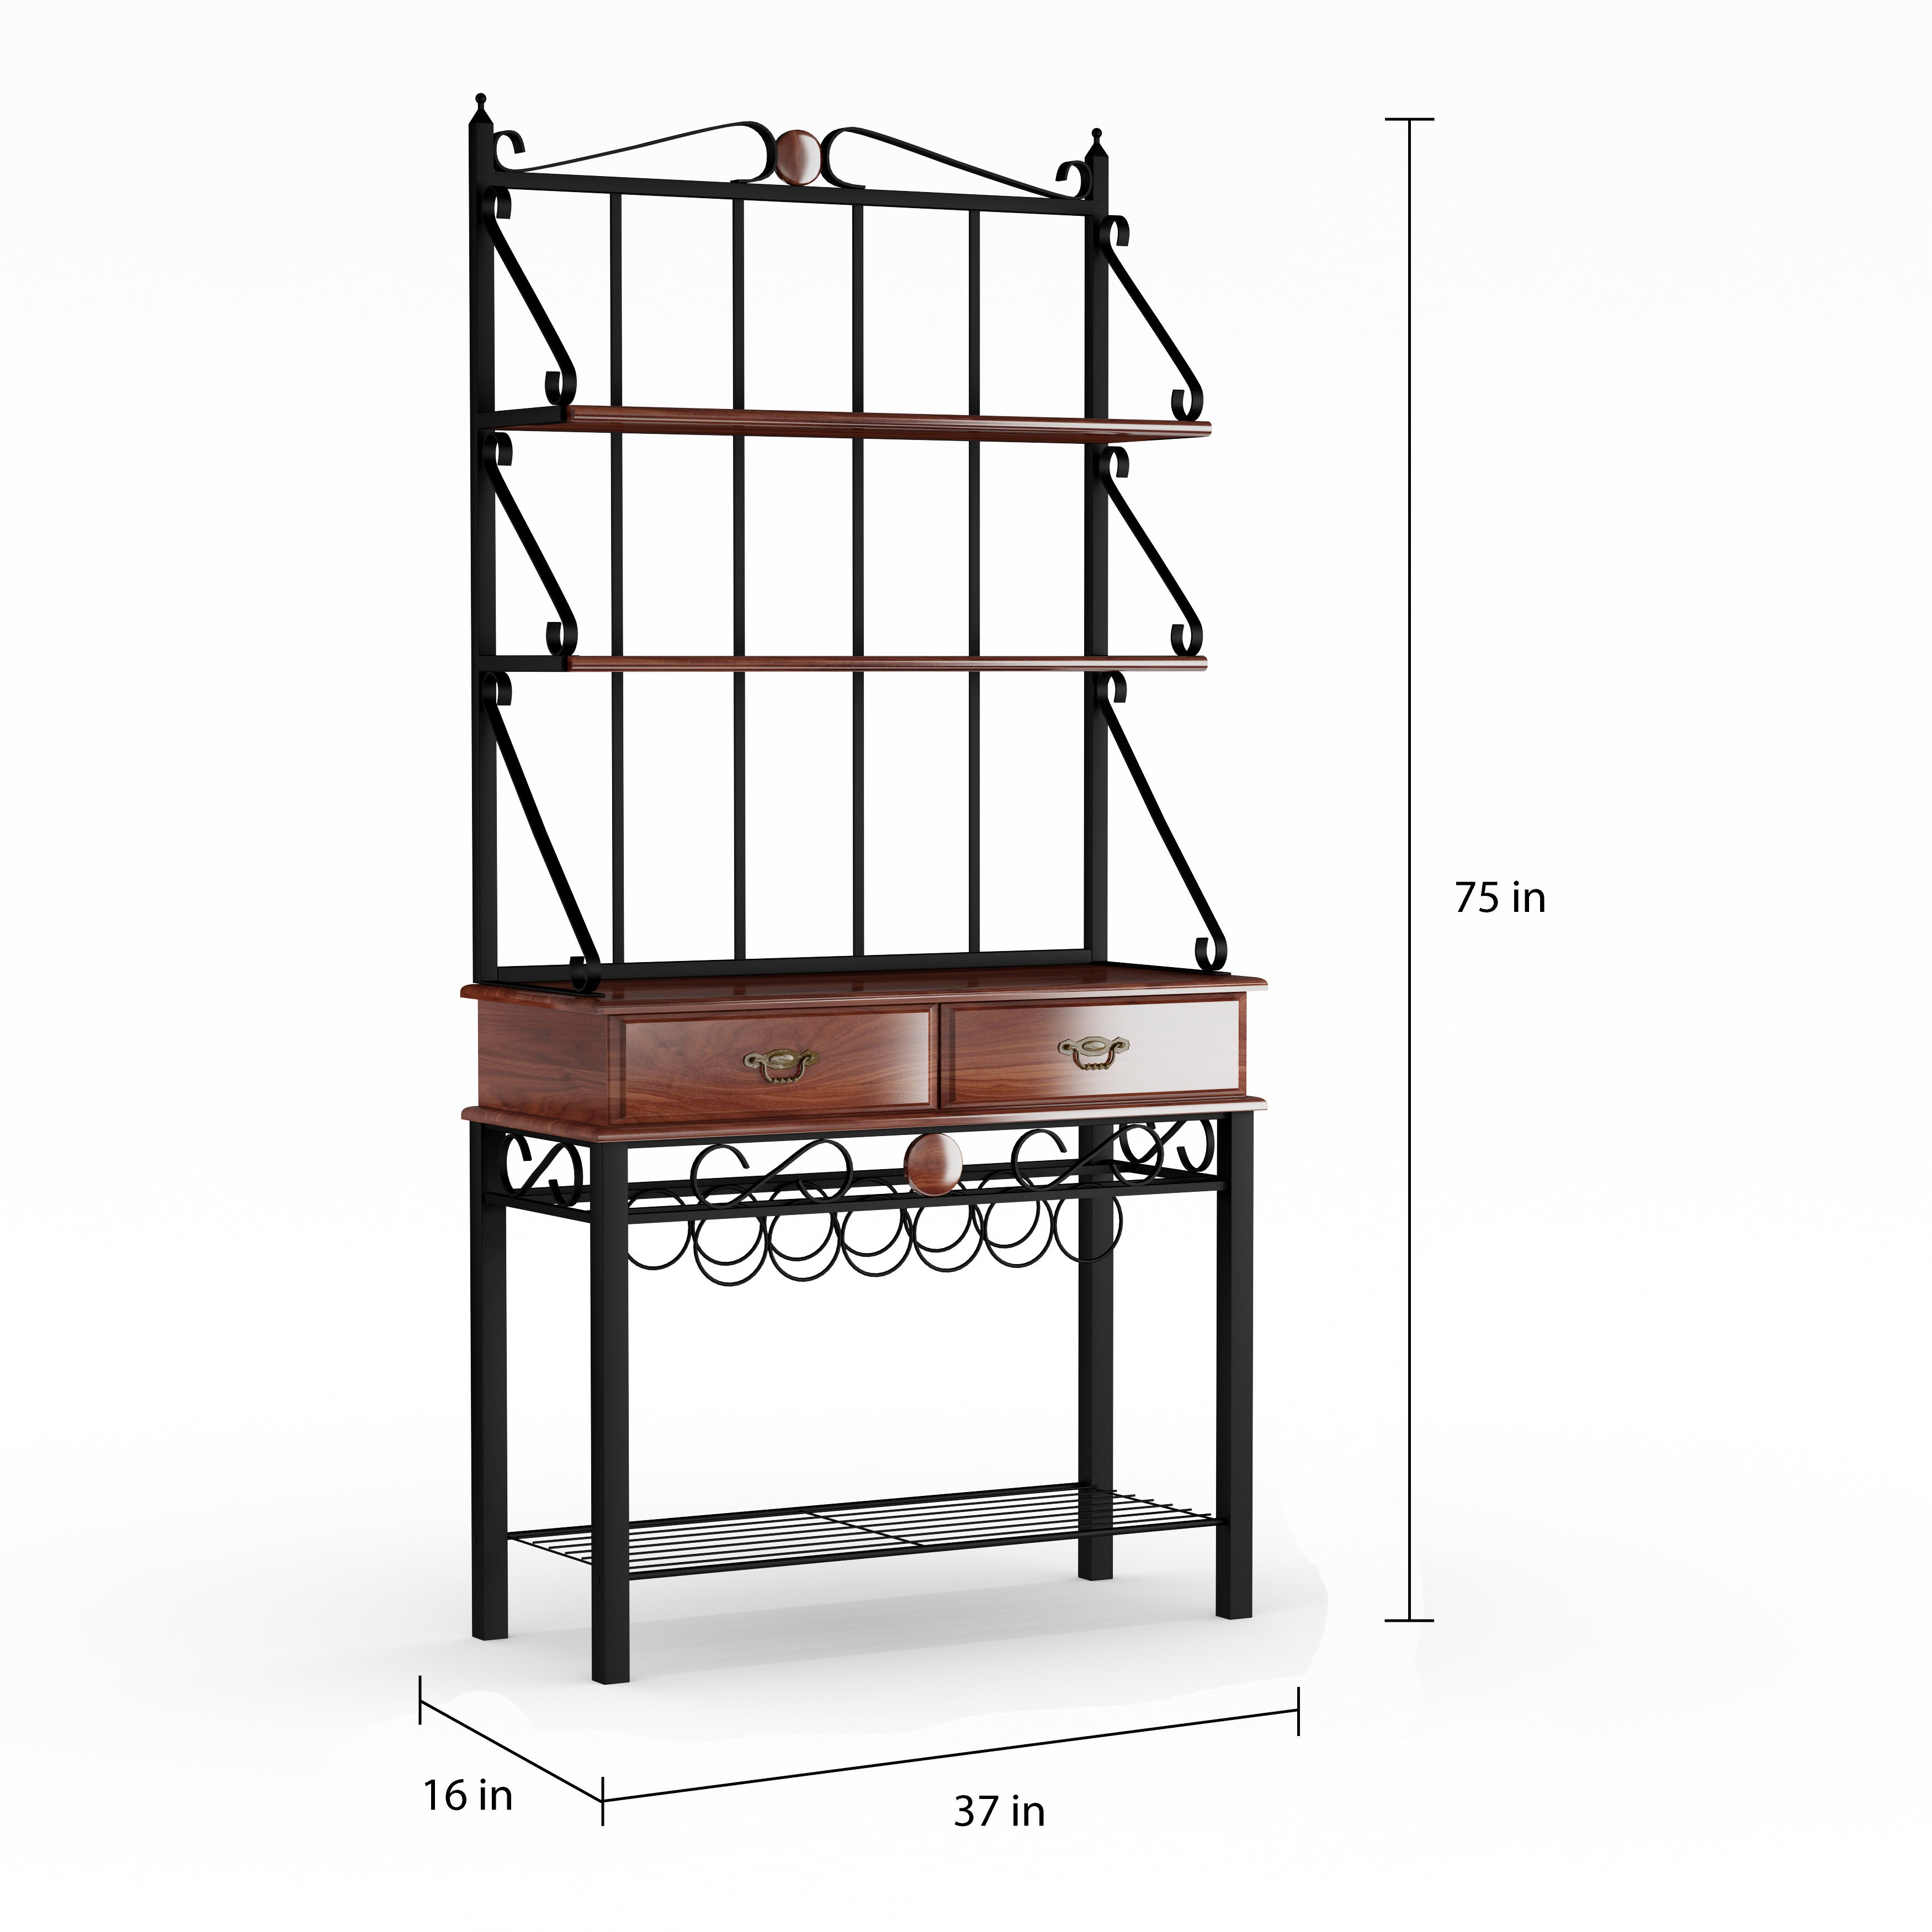 Gracewood Hollow Heyer Kitchen Cabinet Bakers Rack with 3 Shelves ...